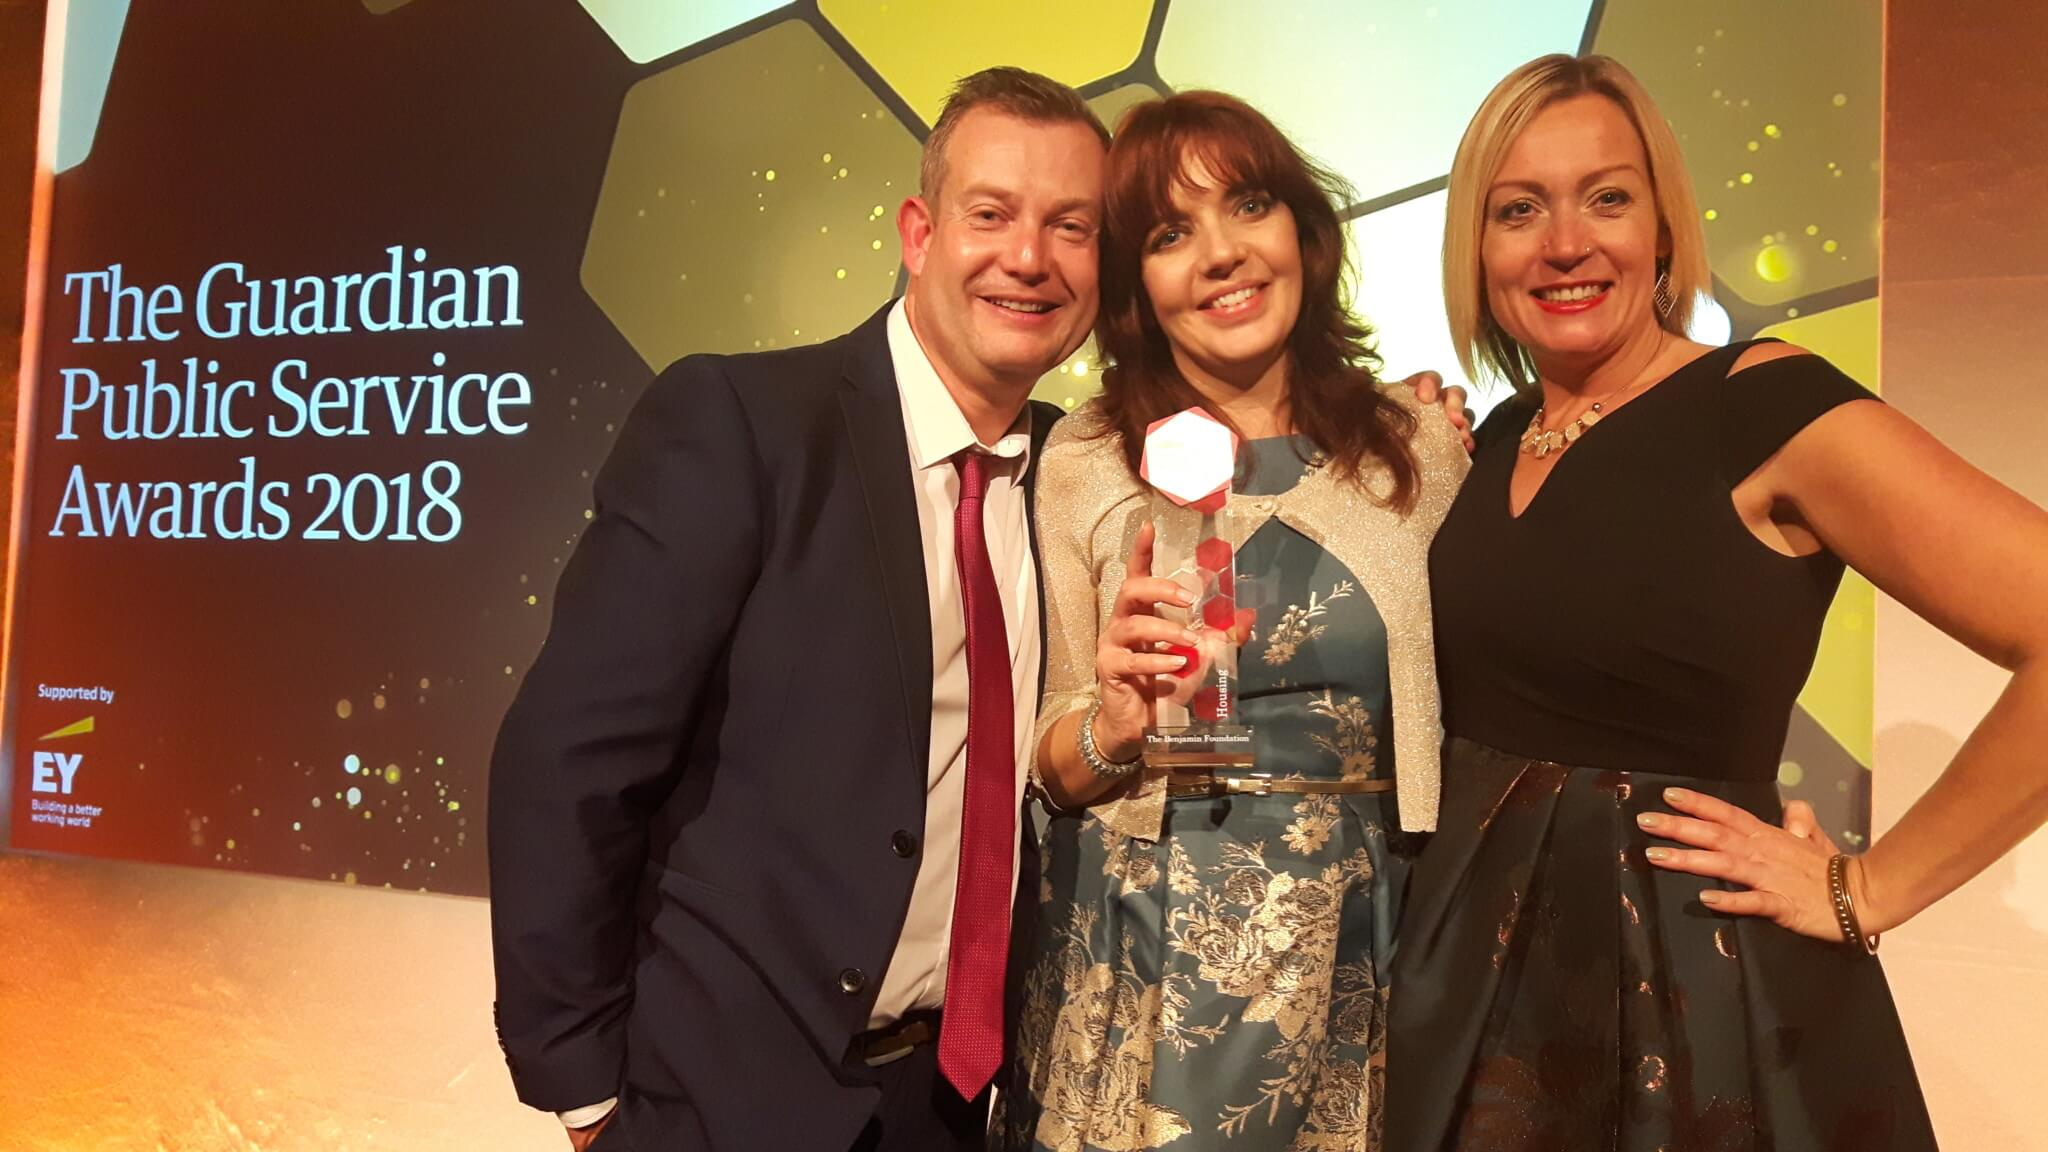 Our Heart and Home team were delighted to win a Guardian Public Service Award in November 2018